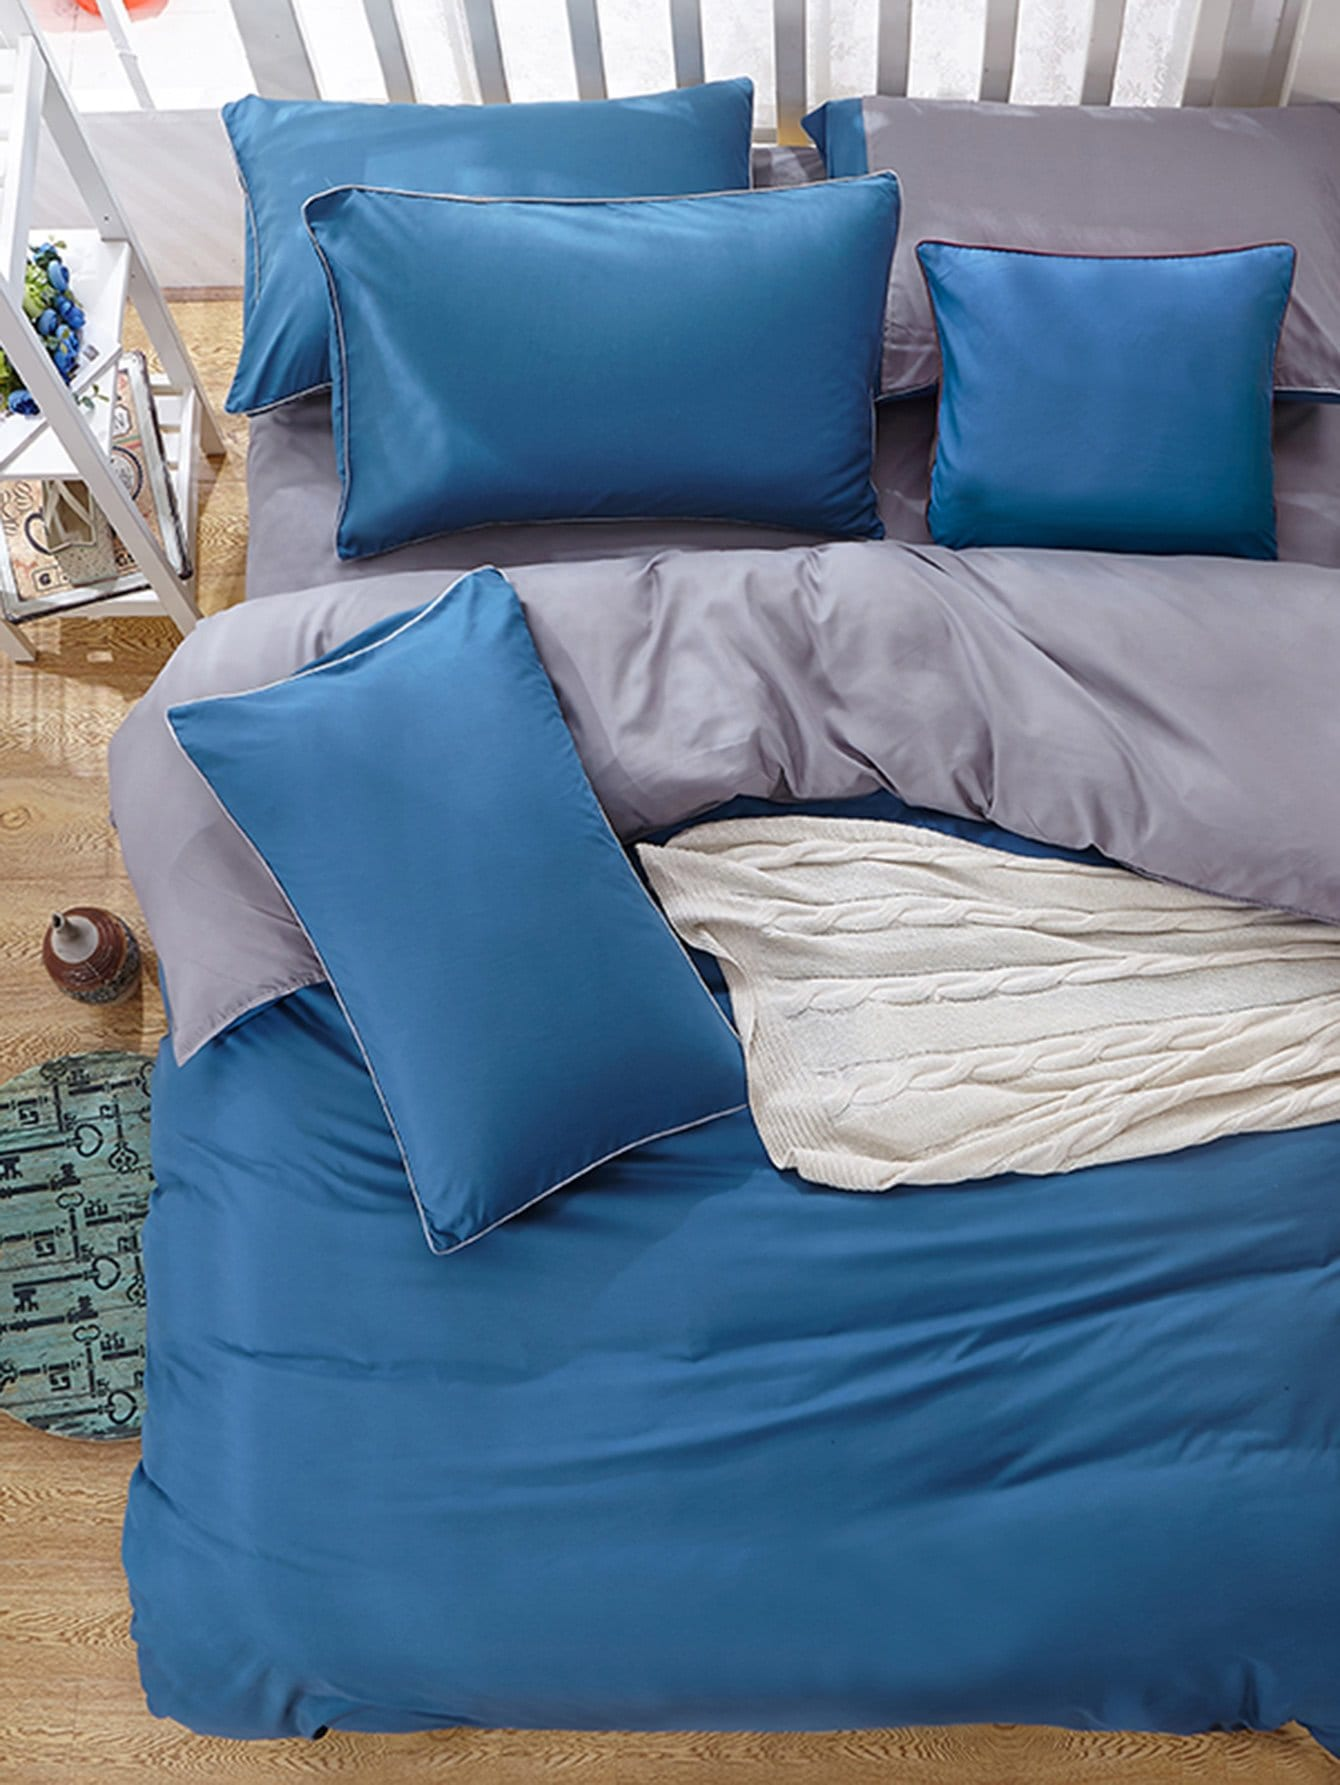 Two Tone Bedding Set полотенце для ванной two tone grafik quelle quelle 239974